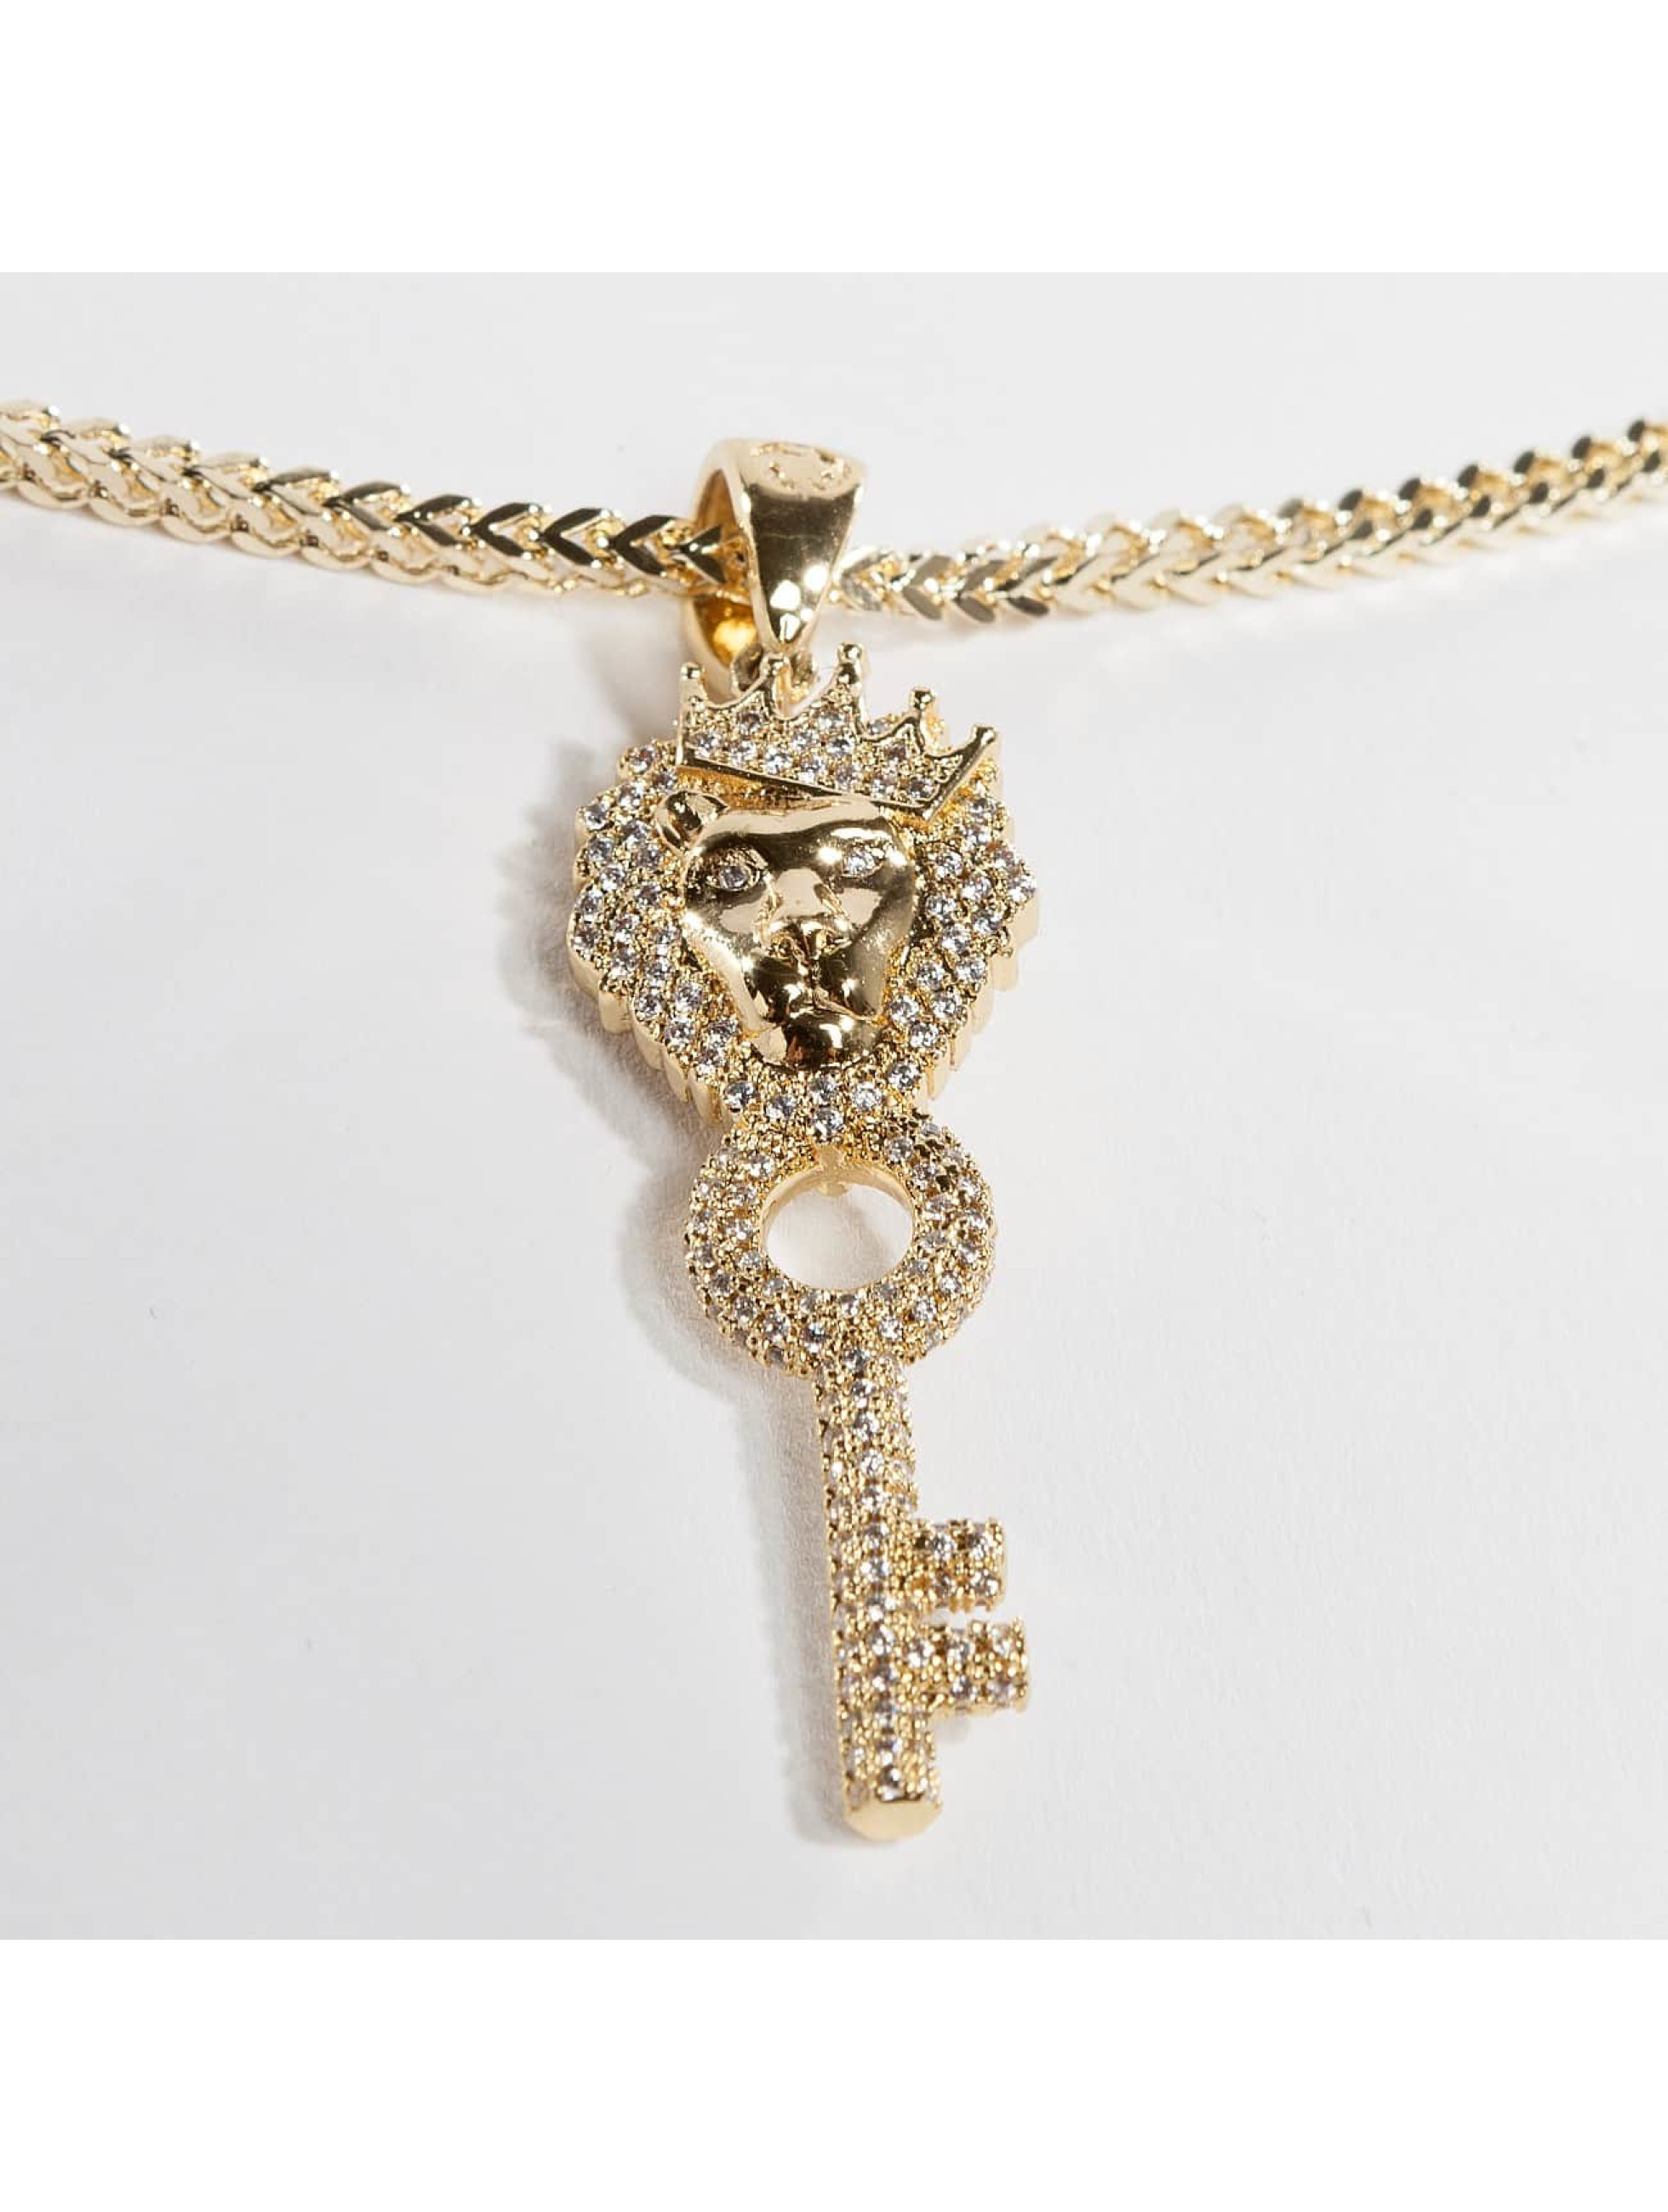 KING ICE ketting Gold_Plated CZ The Major Key goud